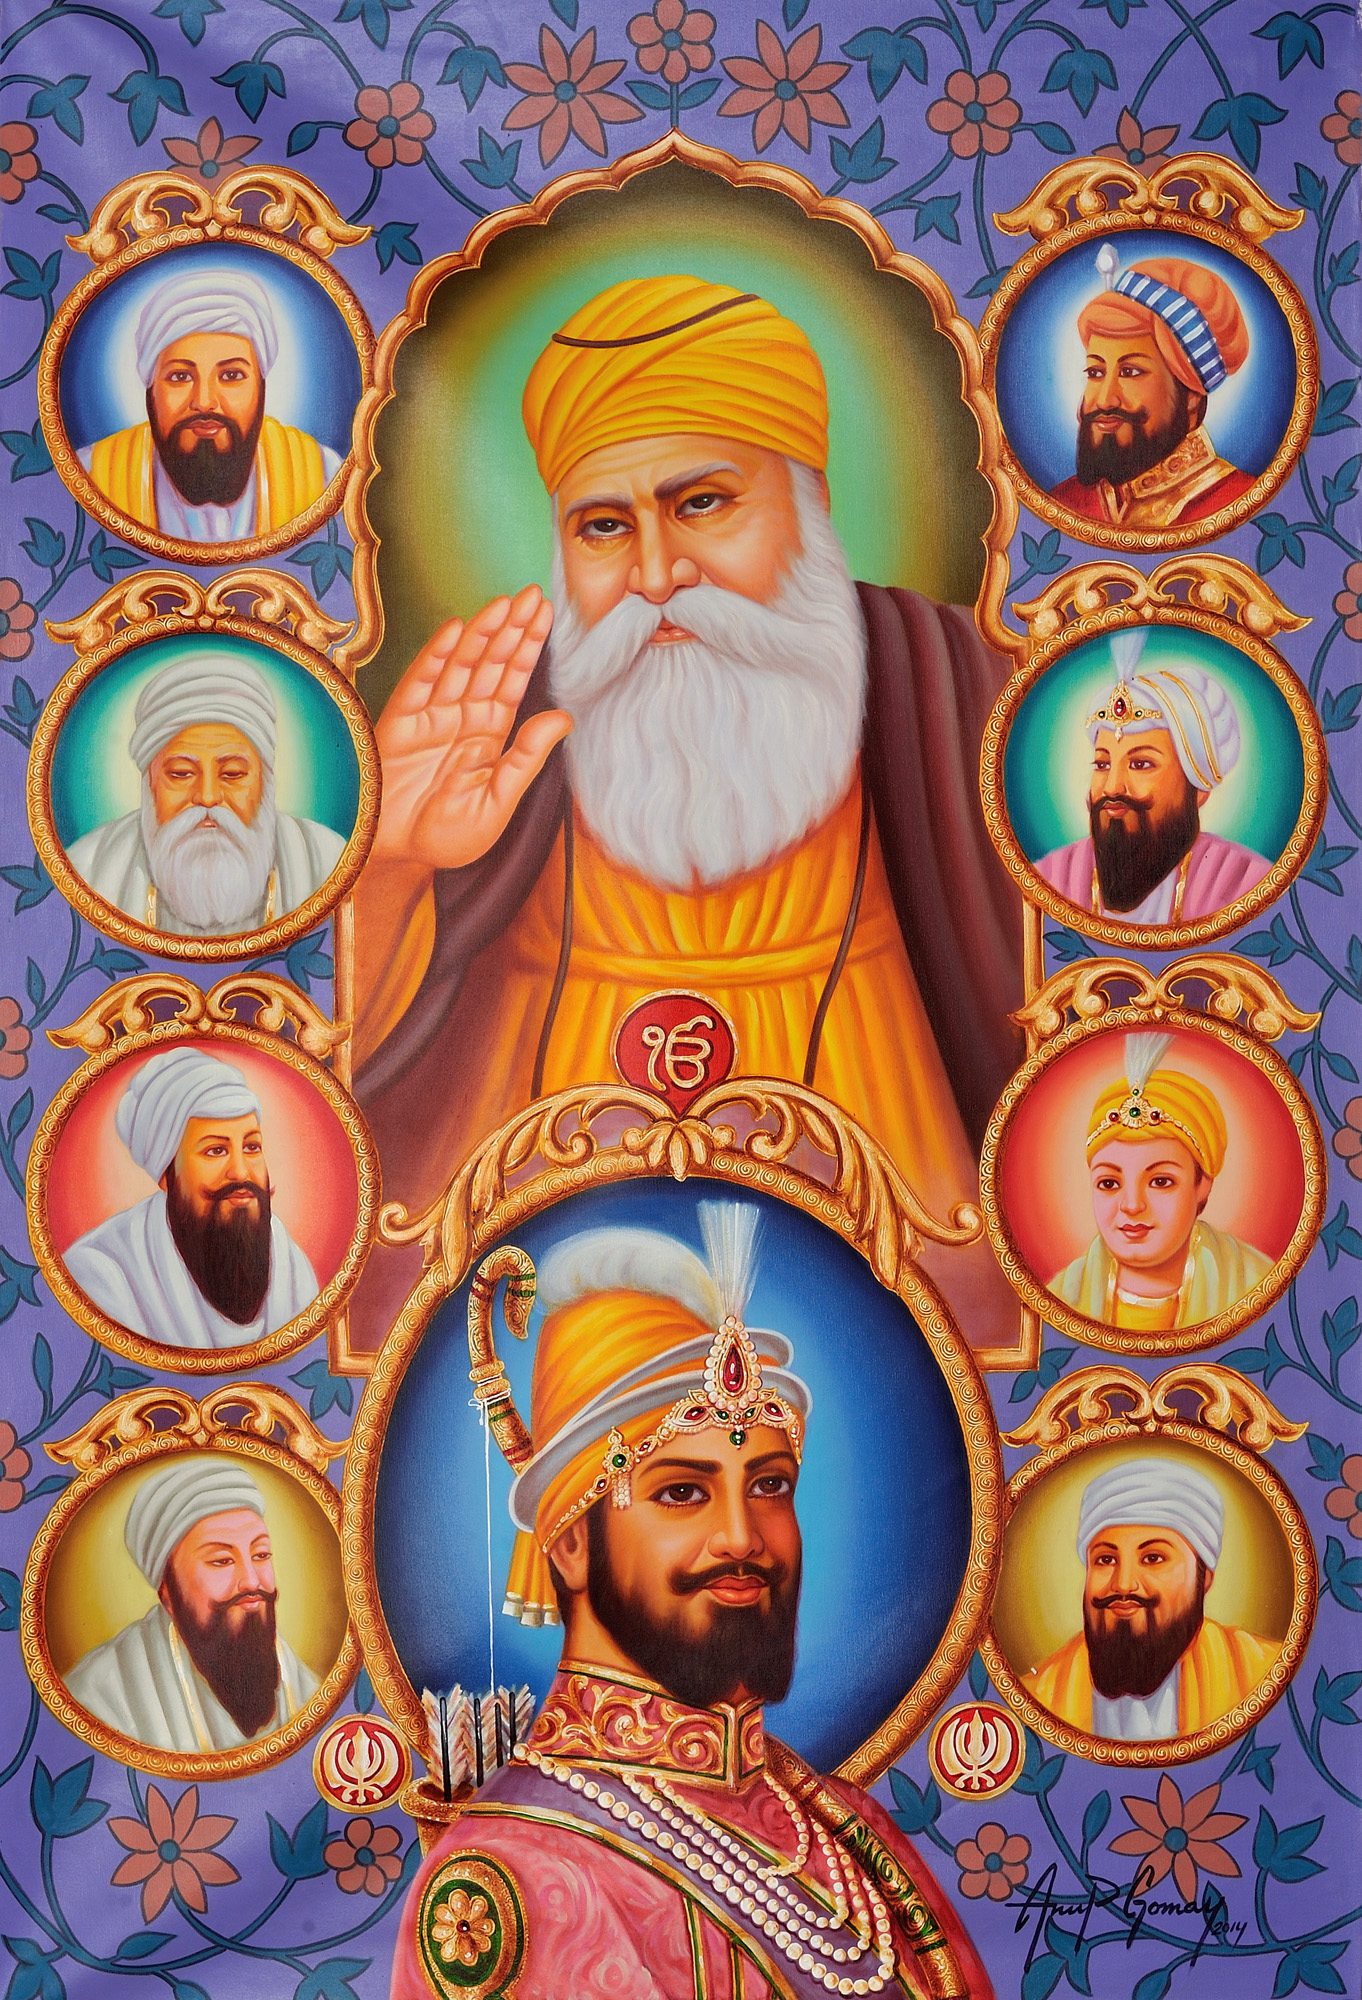 Guru Nanak Hd Wallpaper The Ten Sikh Gurus